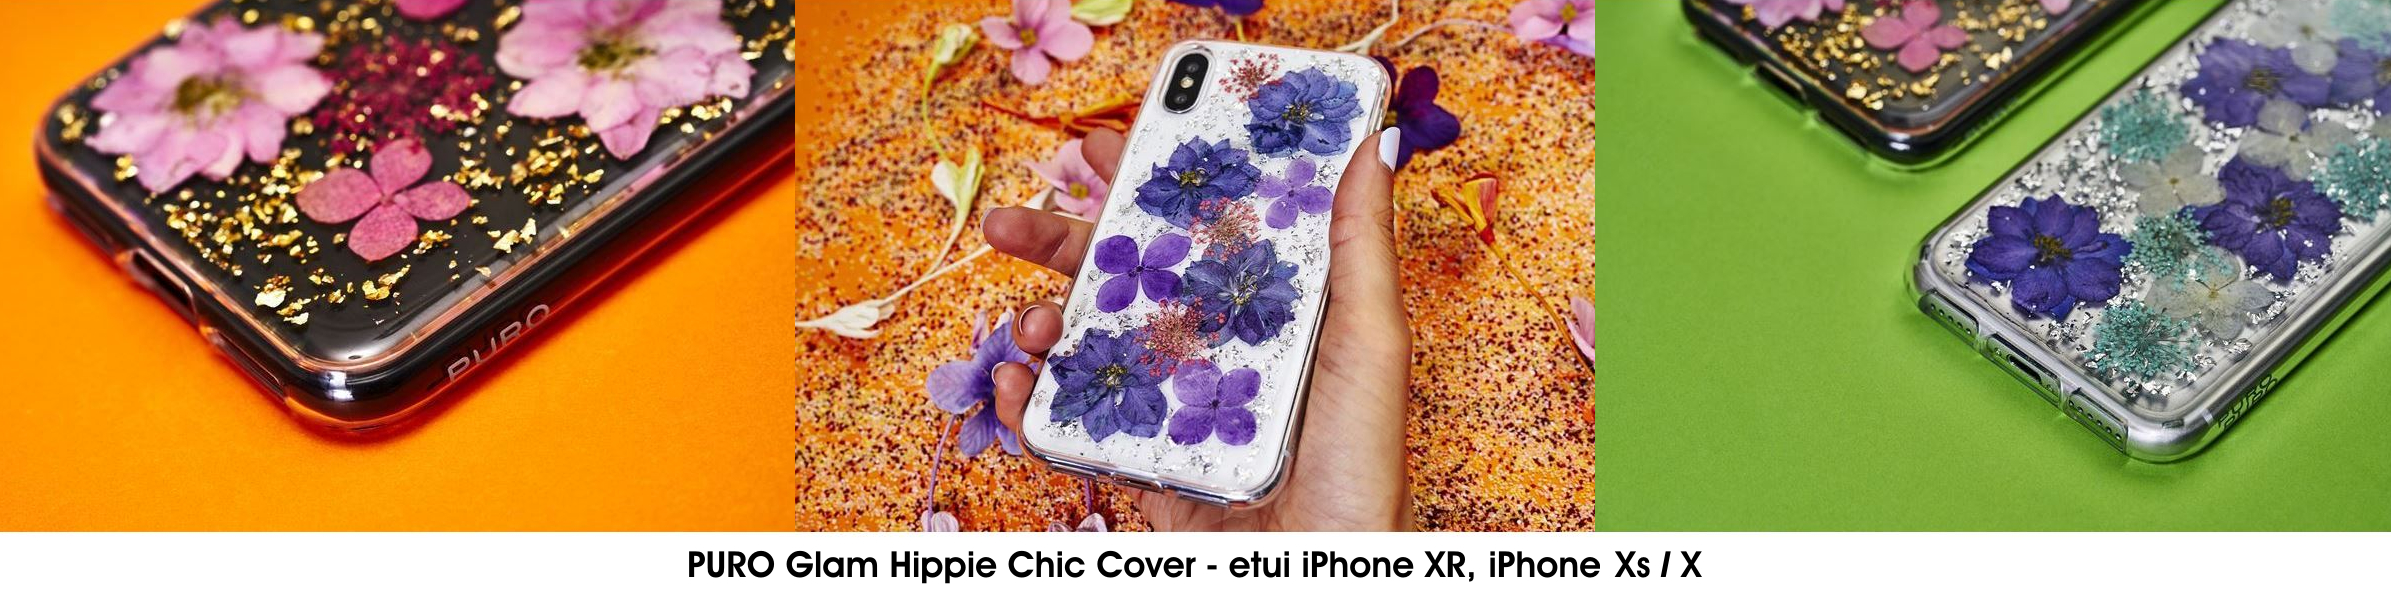 Puro-Glam-Hippie-Chic-Cover-iPhone-XR